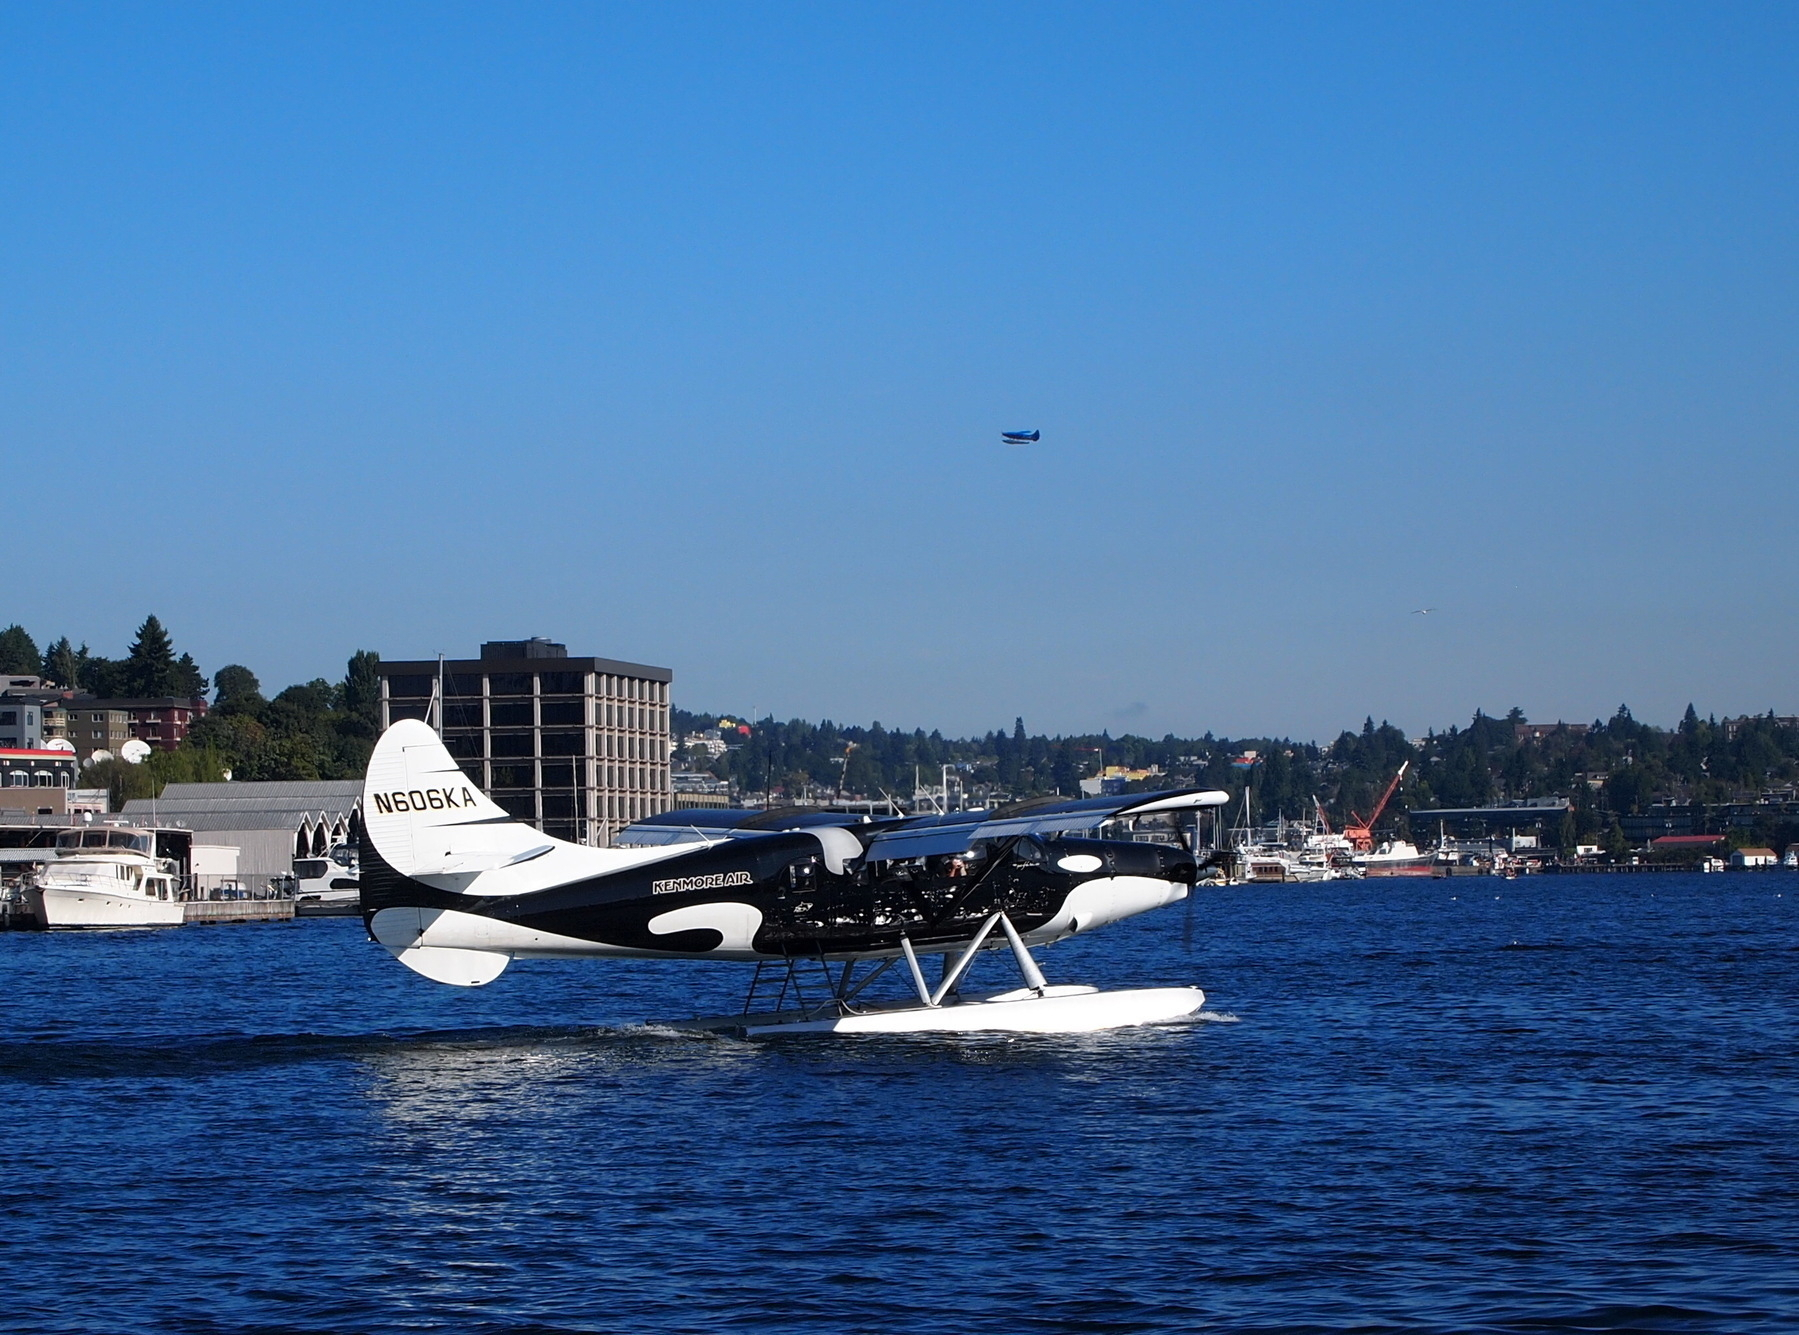 Another large seaplane from Kenmore Air. This one is painted black and white like an Orca whale!